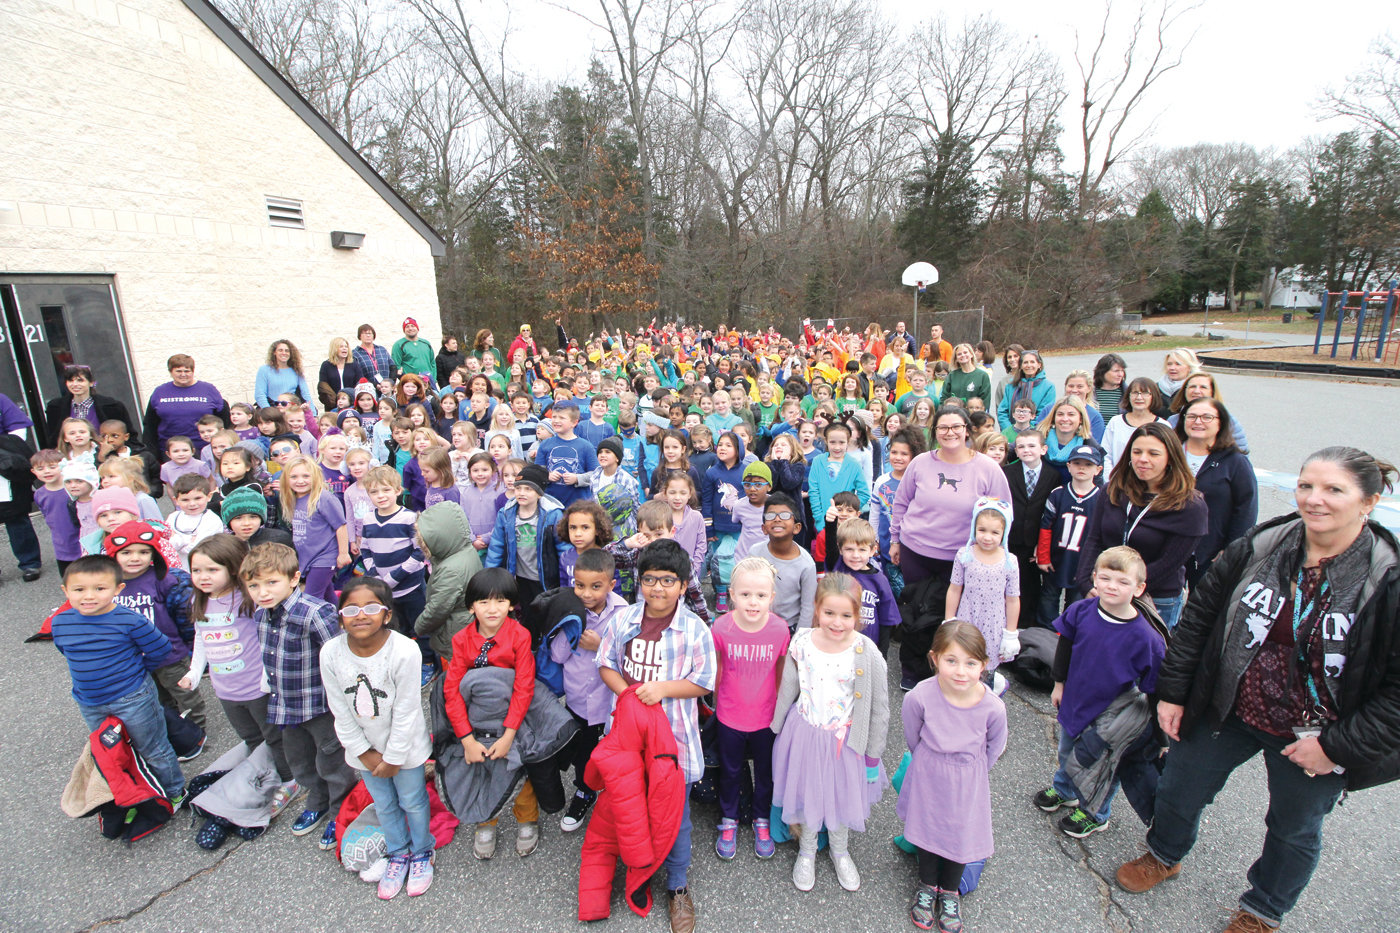 THE WHOLE SCHOOL: Cedar Hill School students and faculty gathered Friday for a group shot on the final day of spirit week. Excited ran high as everyone knew that Principal Dr. Frederick Schweizer would be the target of a Silly String attack moments later.